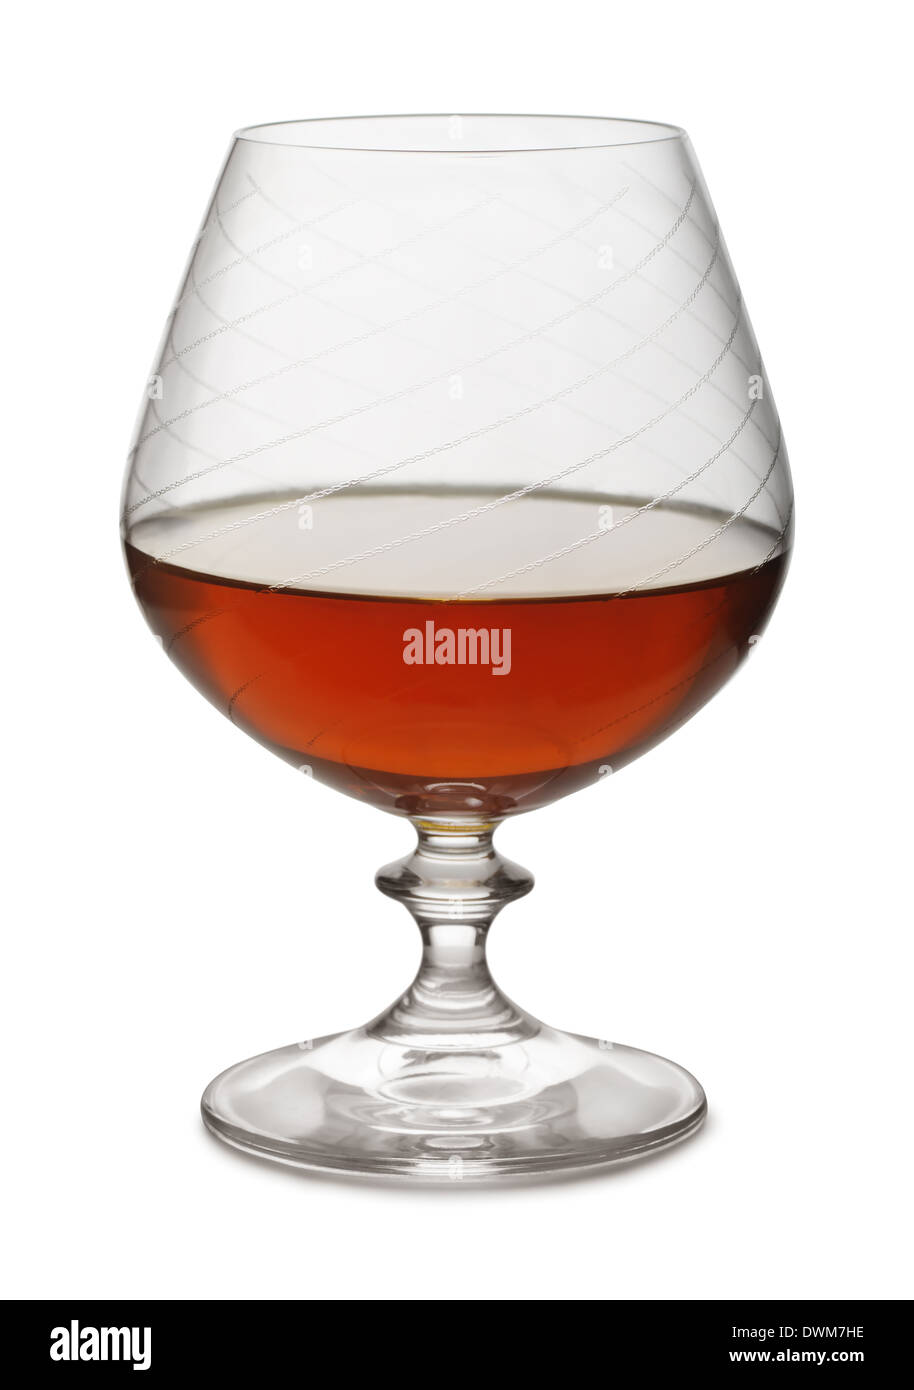 Snifter of aged brandy isolated on white Stock Photo